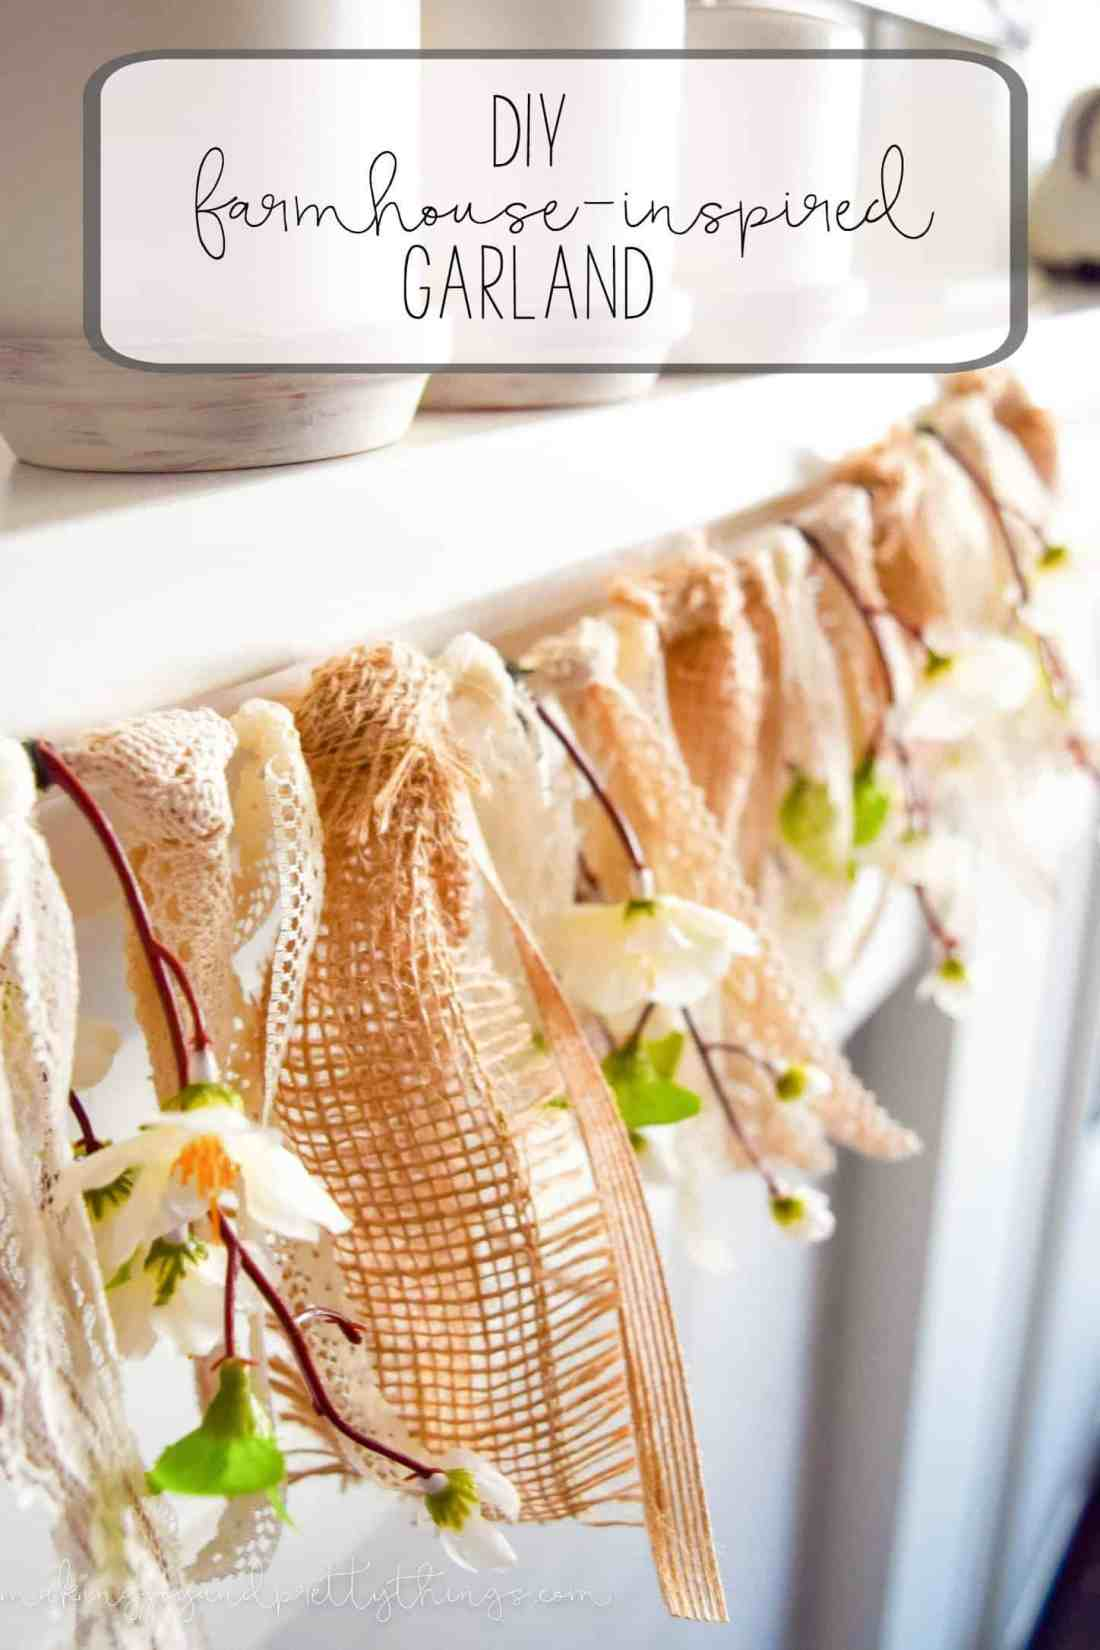 DIY farmhouse-inspired lace + burlap + peach blossom garland.  Easy DIY craft to bring farmhouse style and fixer upper style to your home decor!